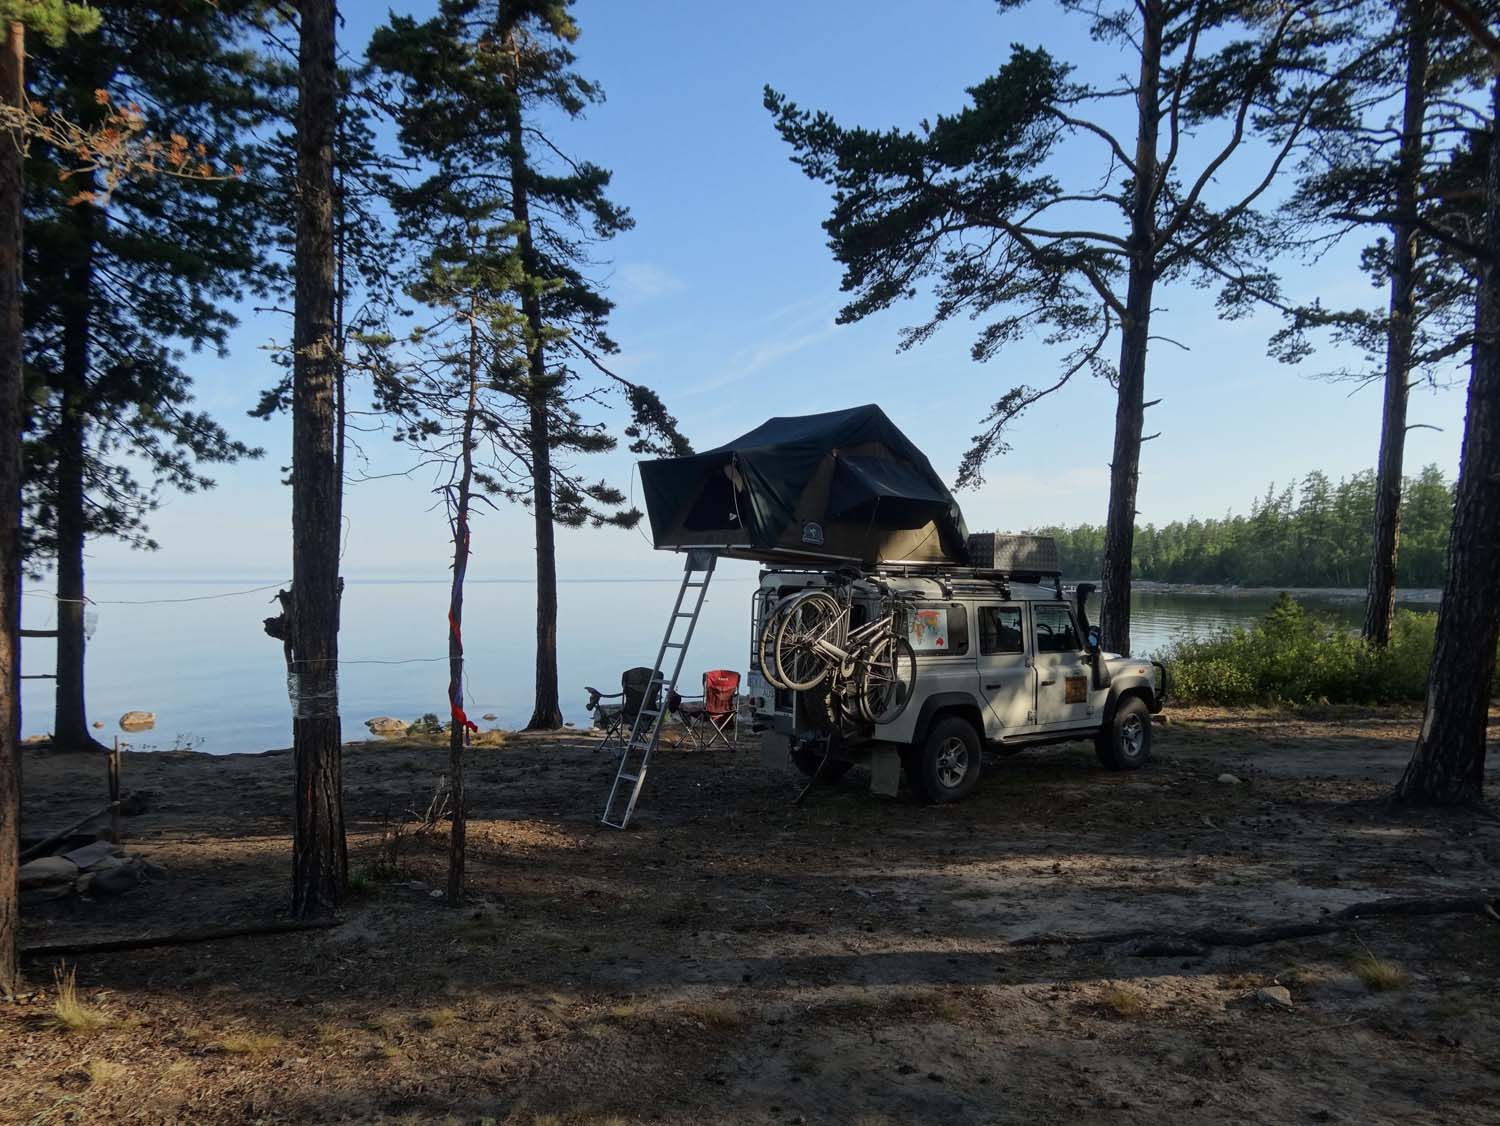 another campsite at Lake Baikal